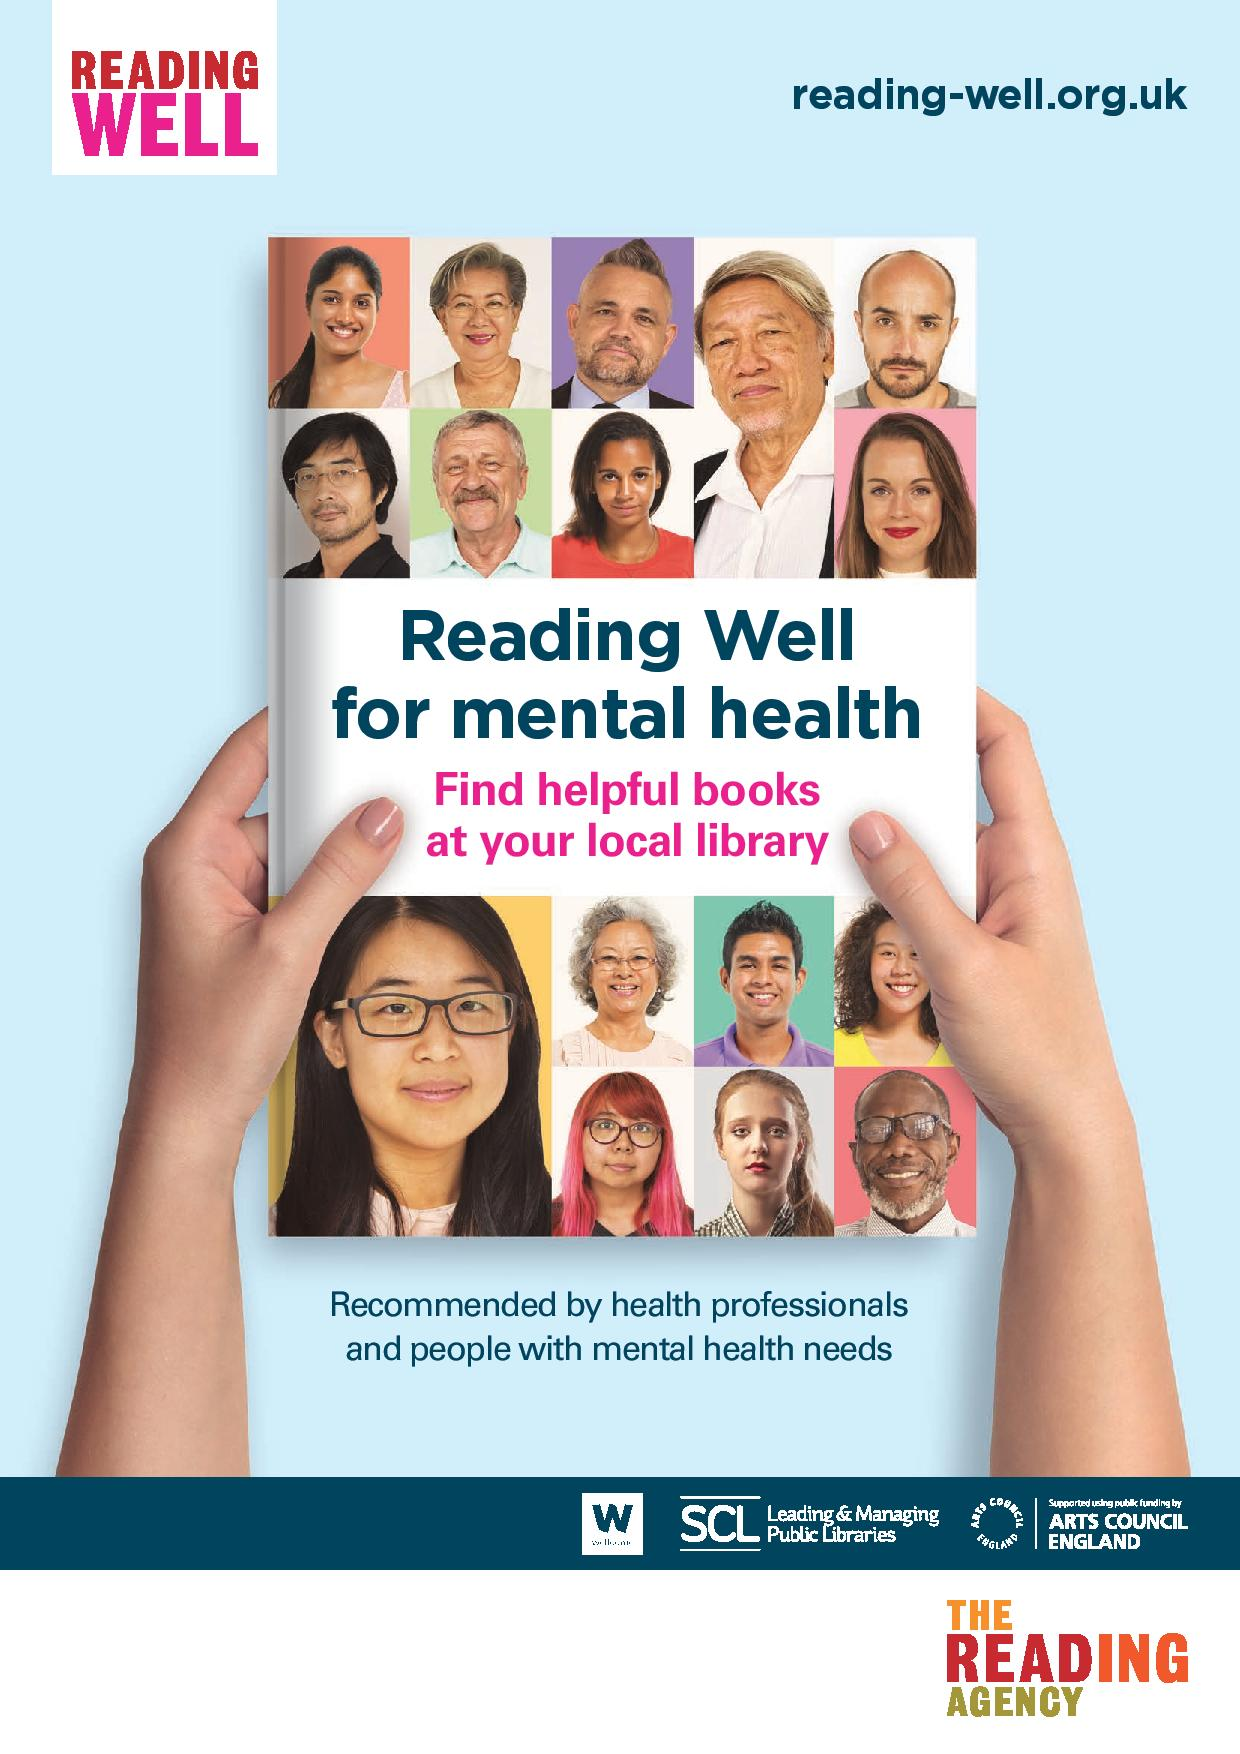 image - Reading Well for mental health (reading list leaflet)